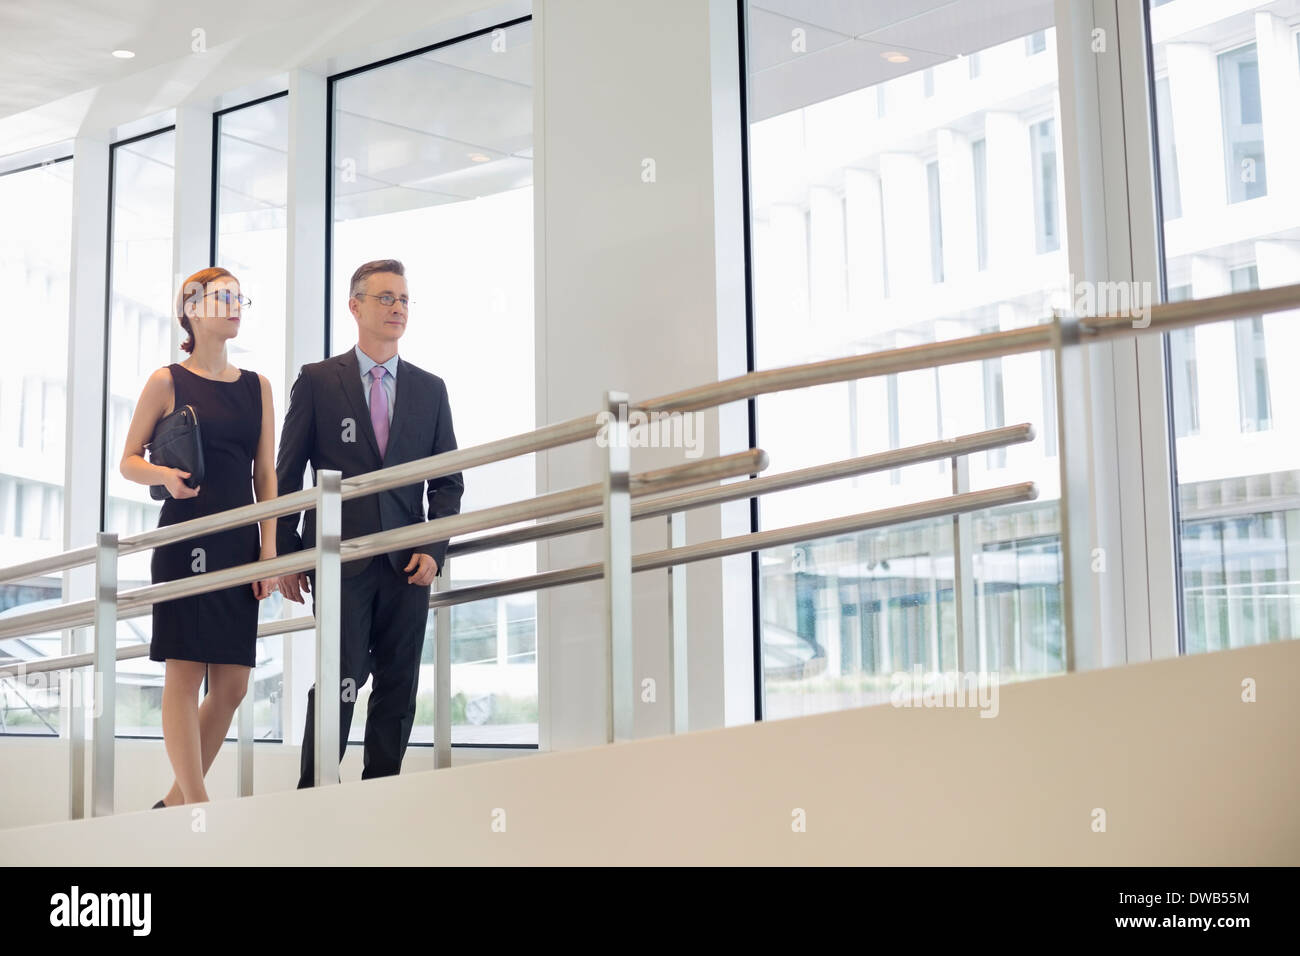 Business people walking by railing in office - Stock Image